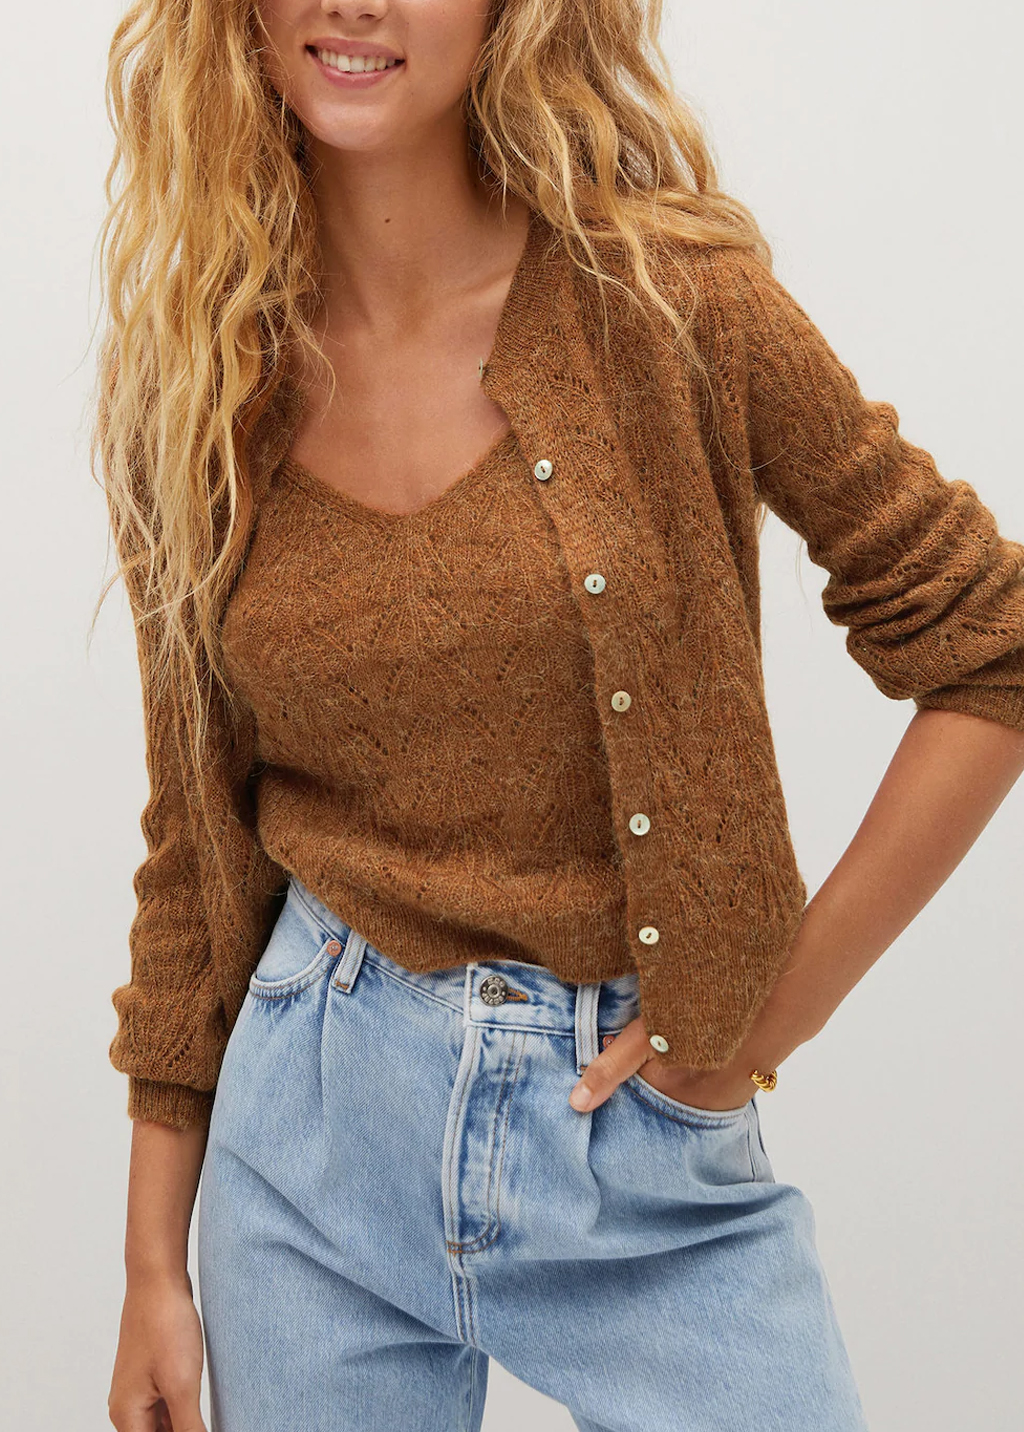 brown knit cardigan